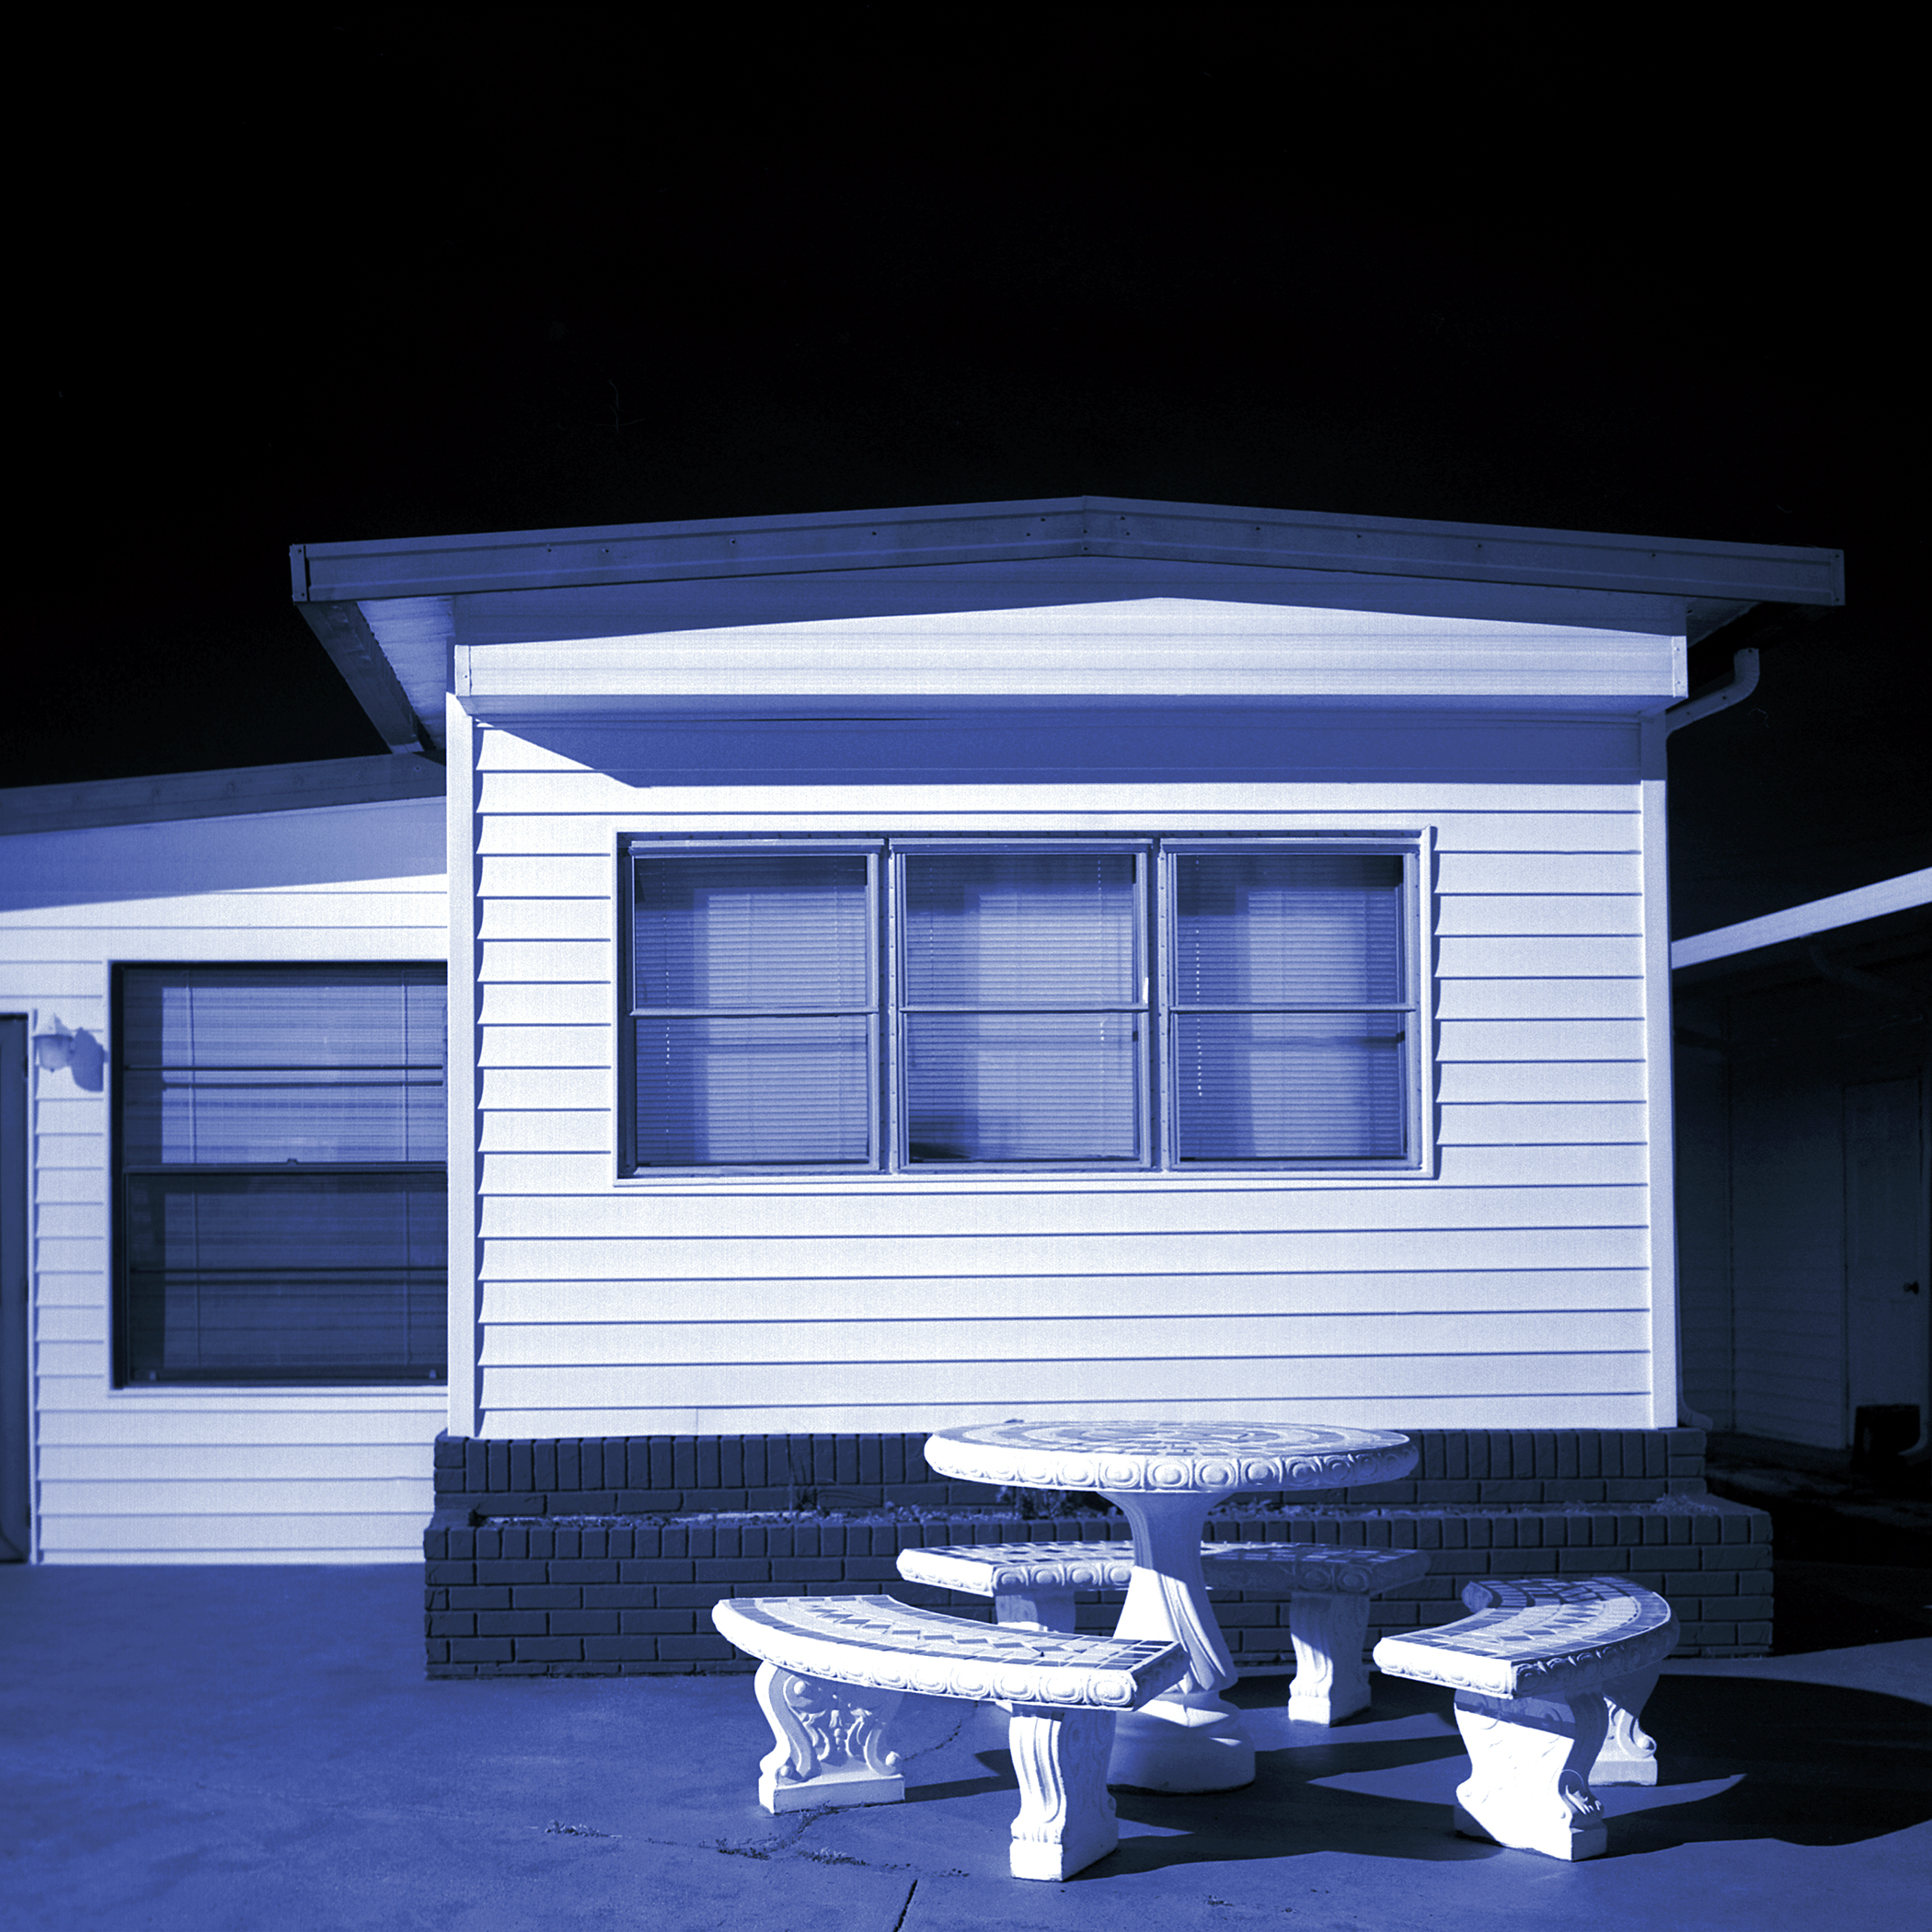 Judy Gelles,  Mobile Home No. 13 , 2002  Digital pigment print, 8 x 8 in, edition of 25; 15 x 15 in, edition of 25   Inquire